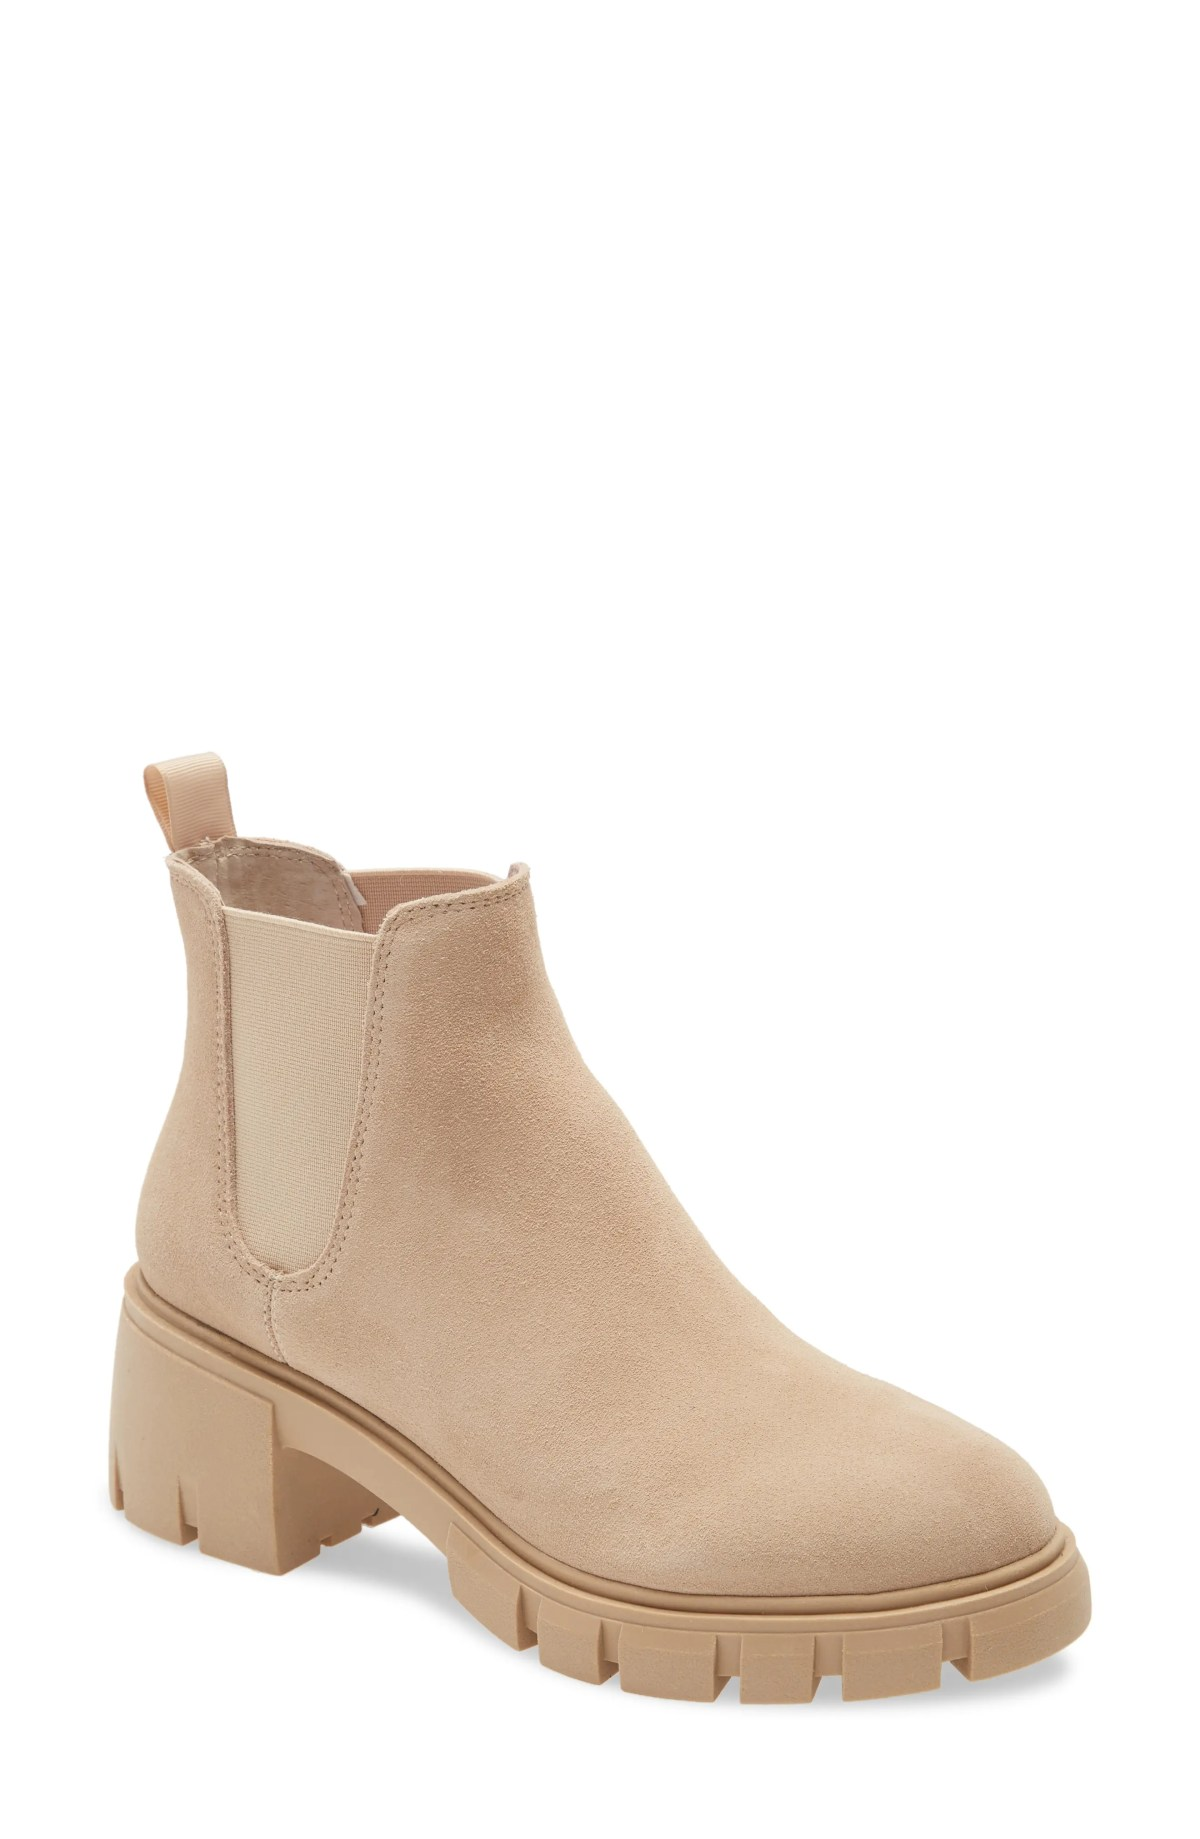 STEVE MADDEN Howler Bootie, Main, color, SAND SUEDE